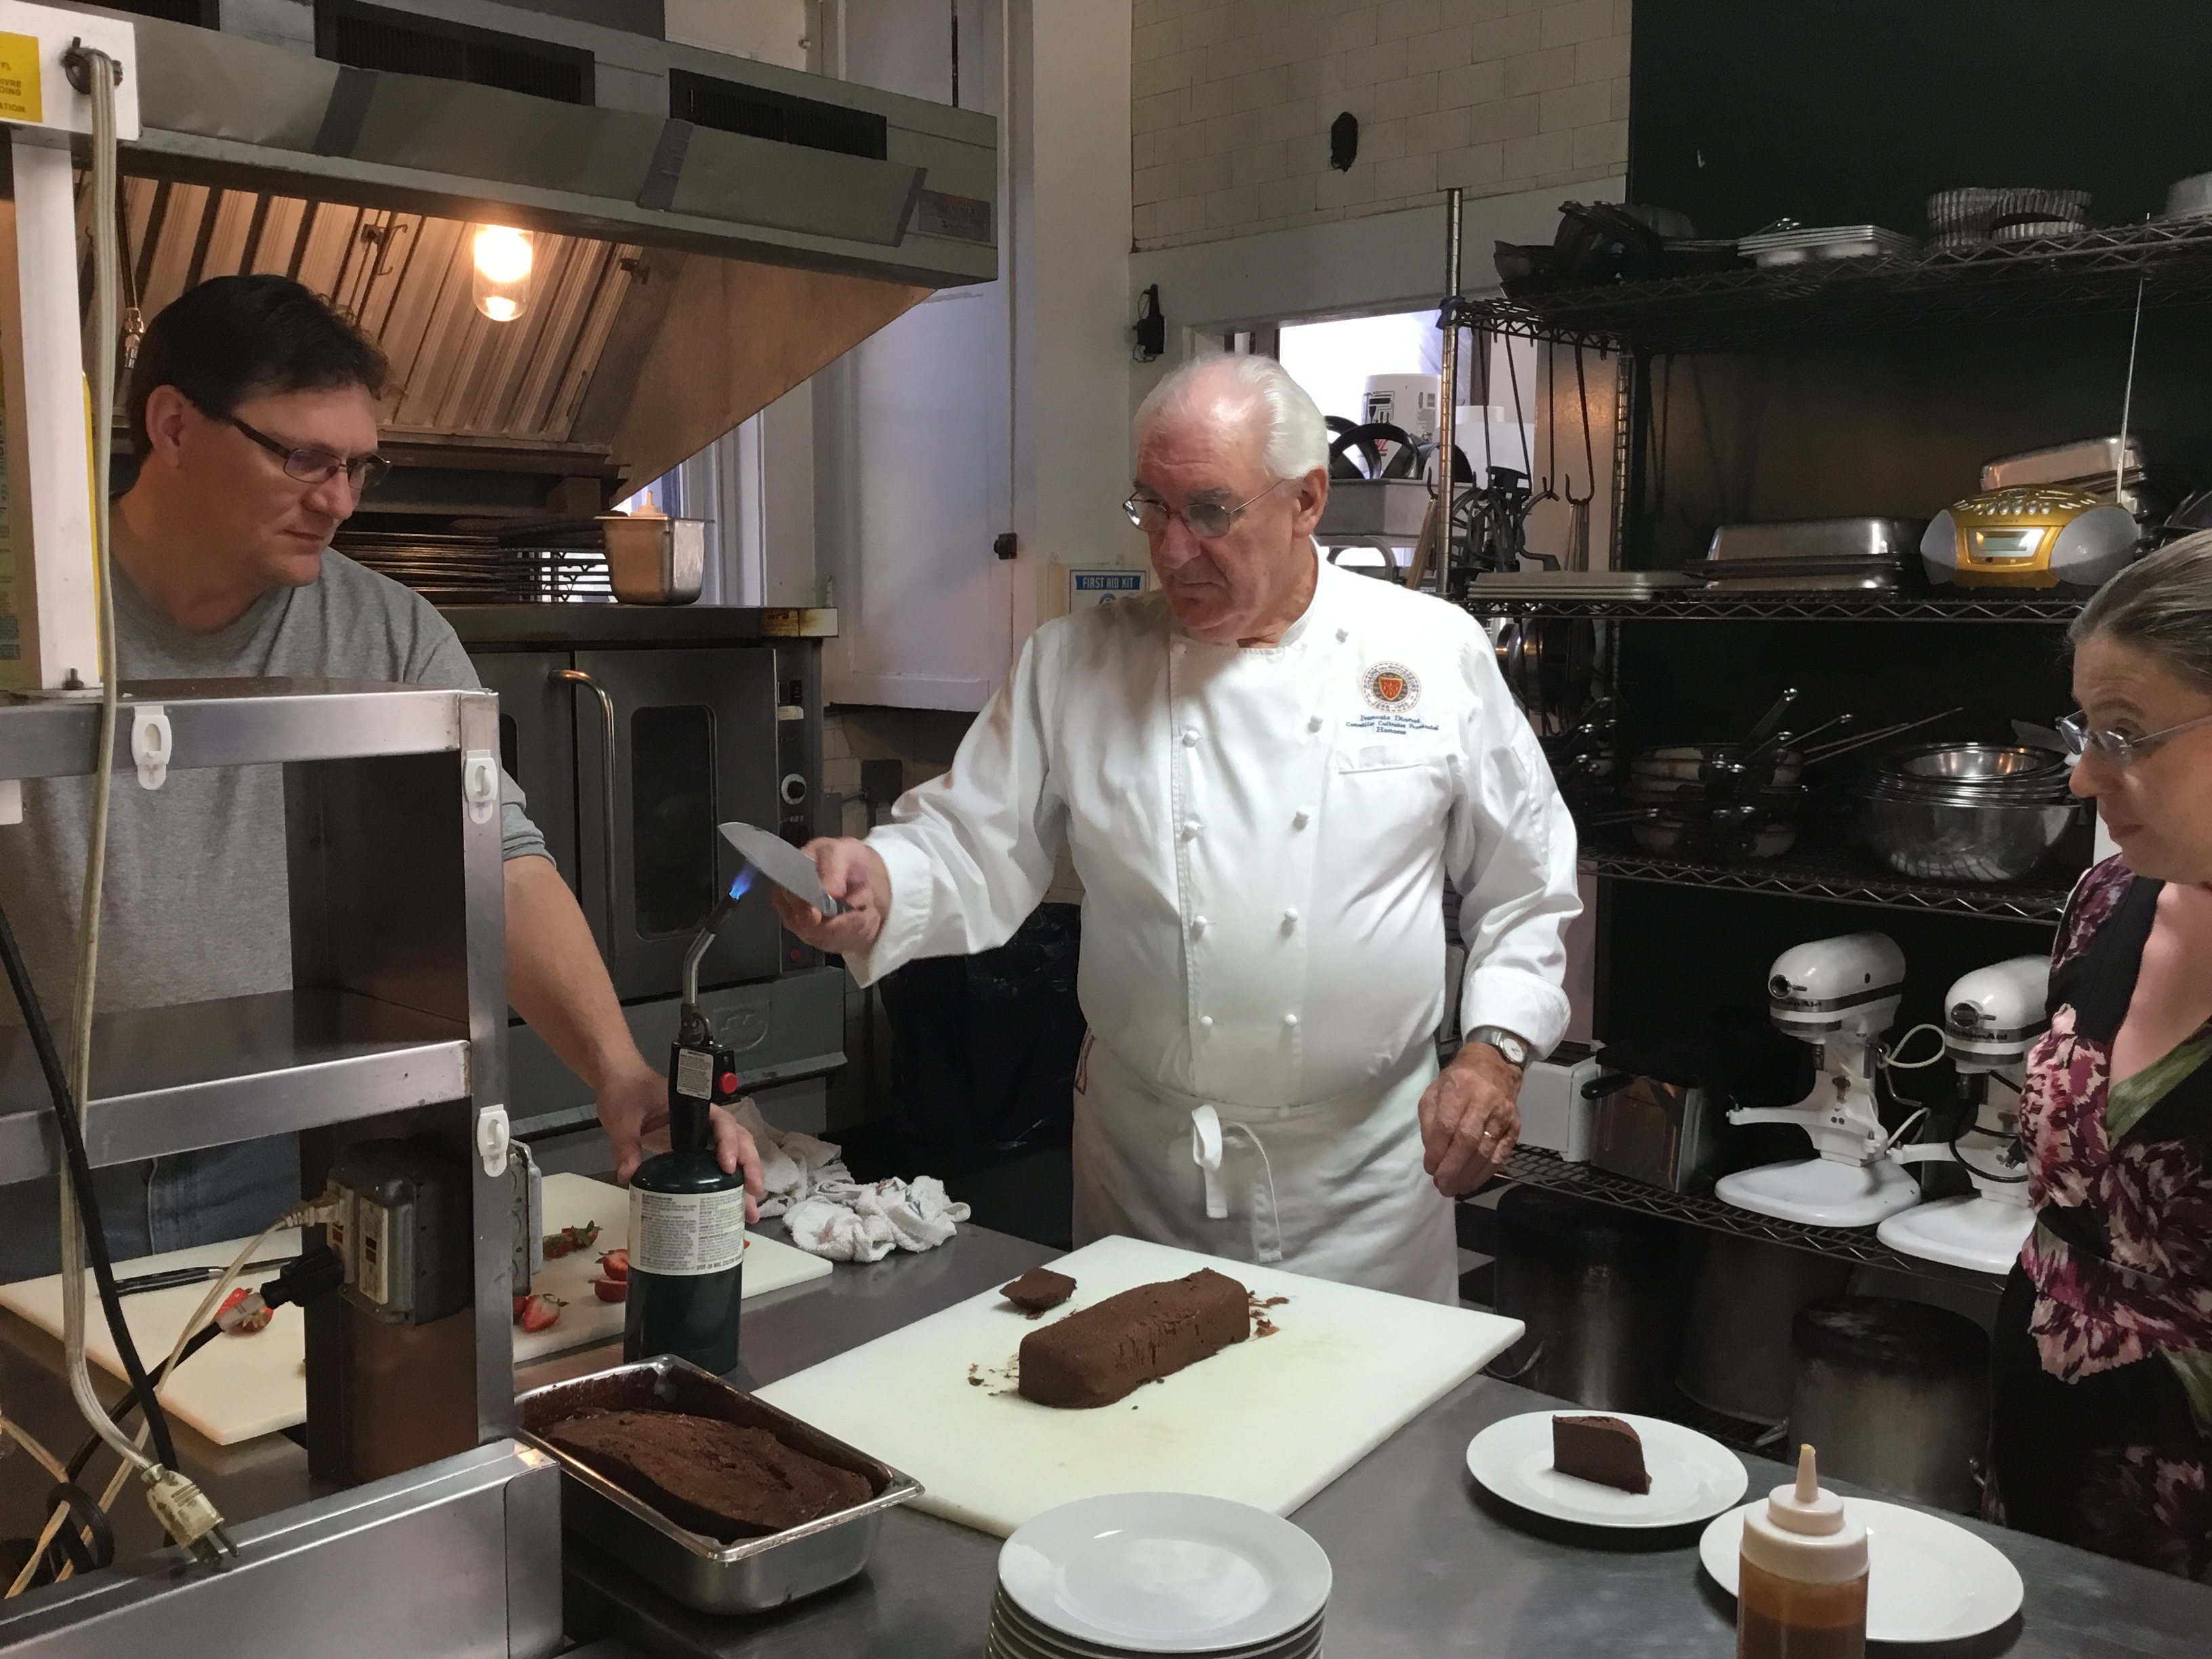 The Chef in French Cooking Class is cutting the dessert